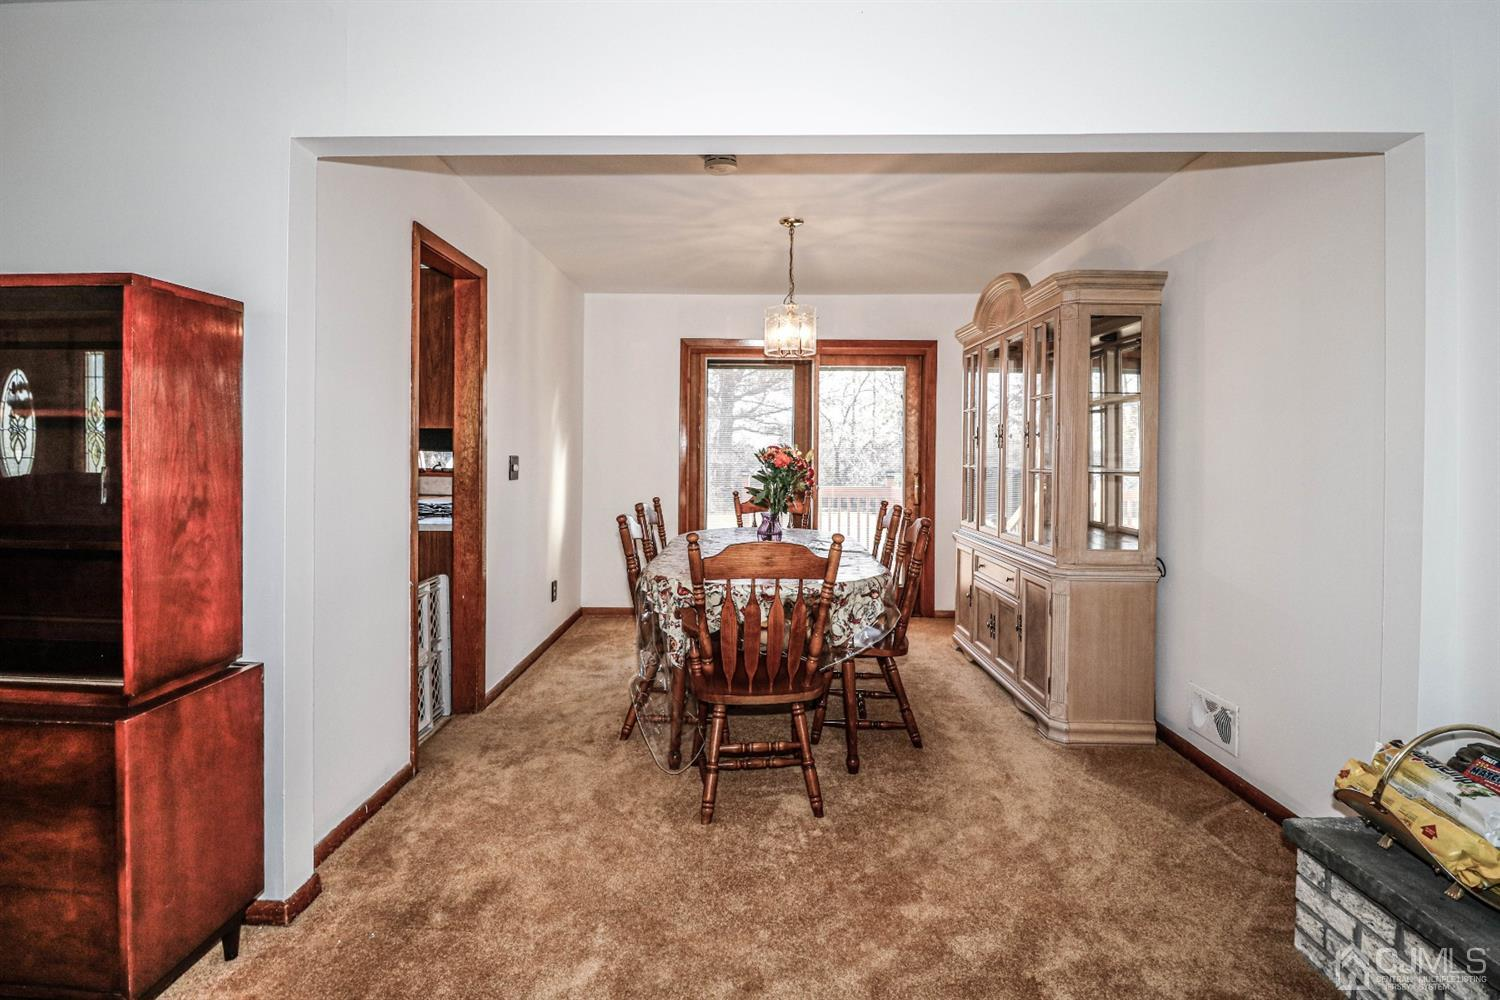 The Pella slider adds to the charm of the freshly painted dining room area bringing lots of natural light into the room.